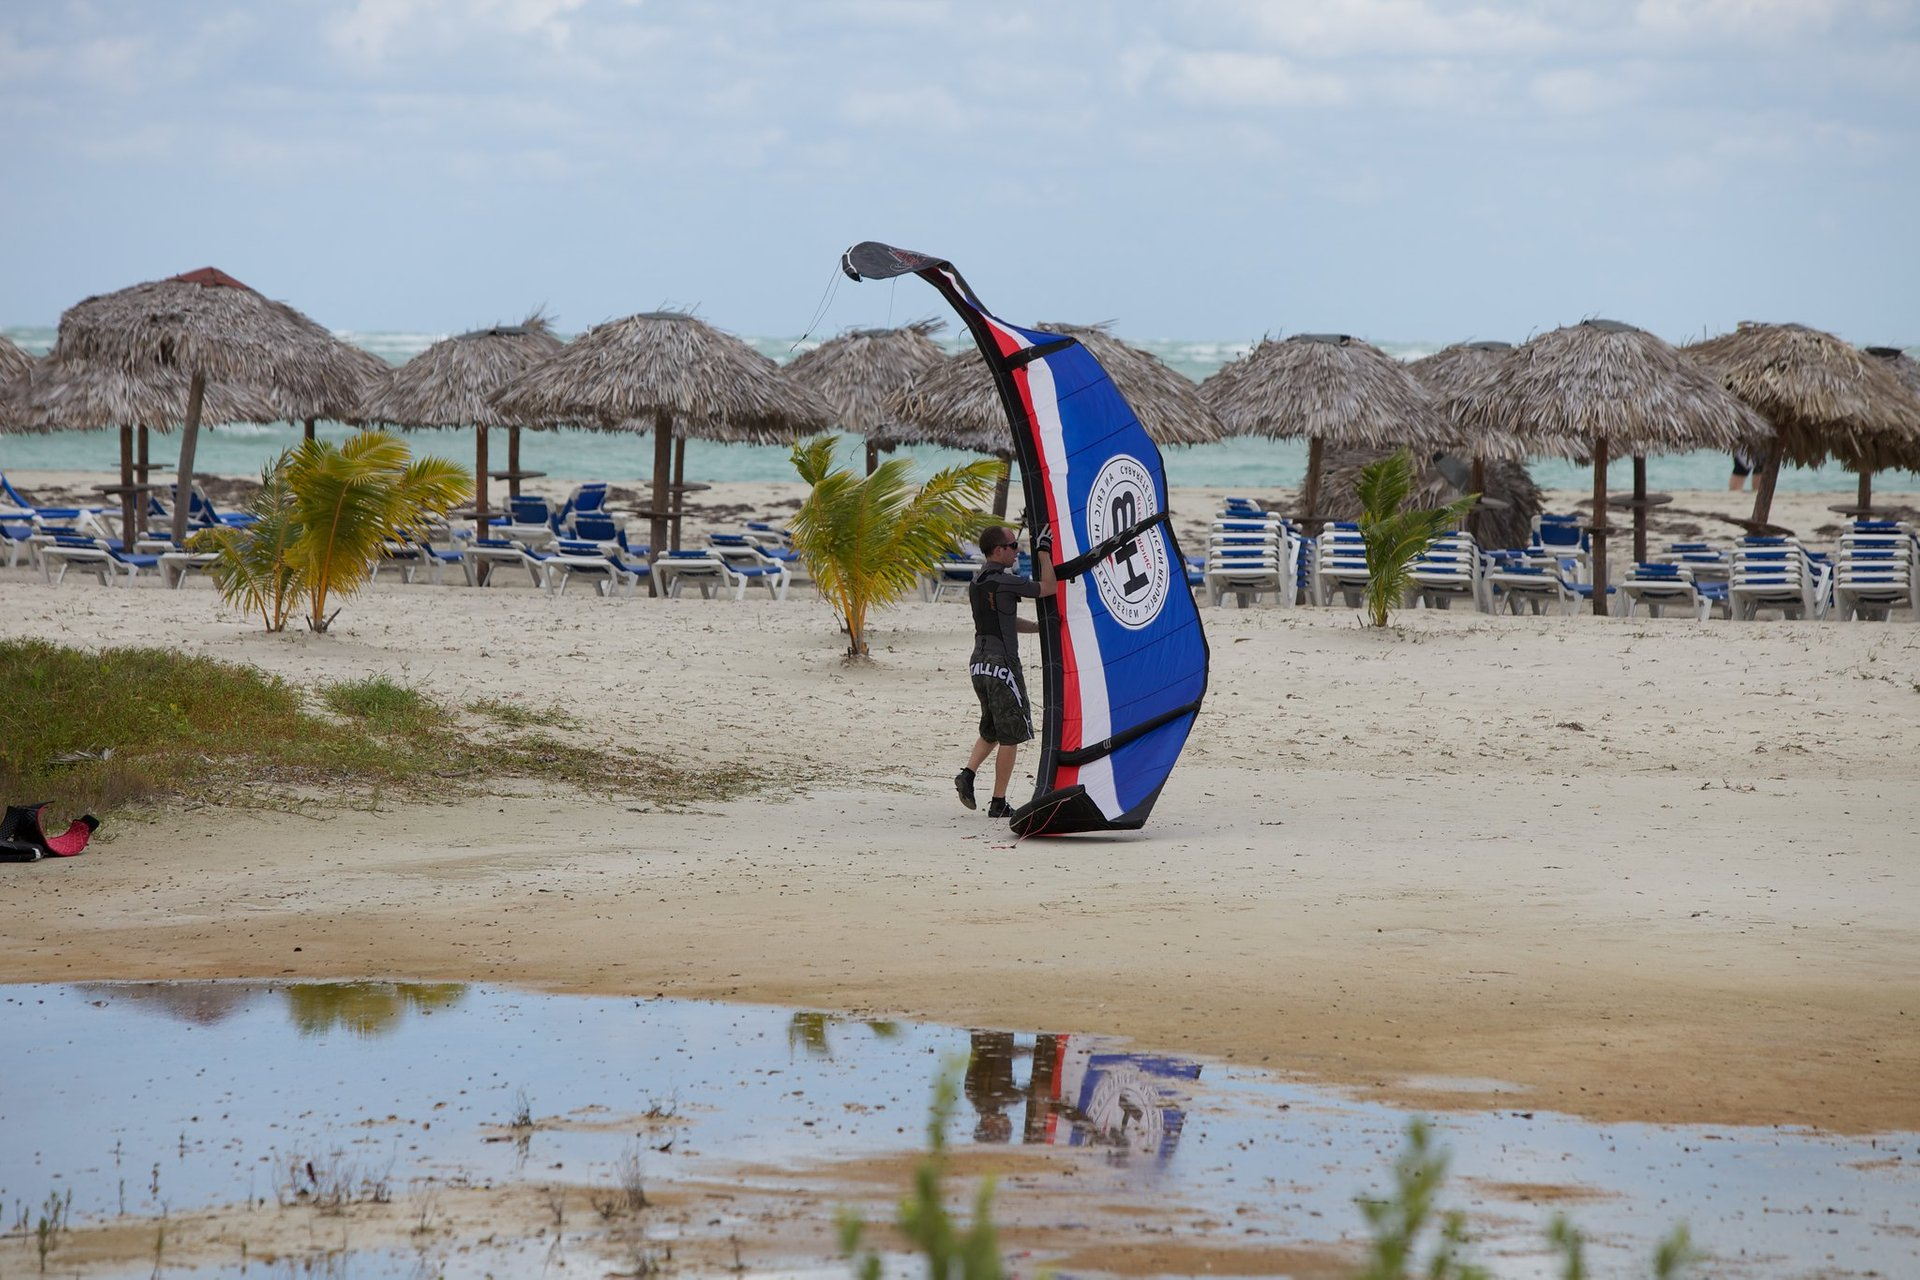 Kitesurfing in Cuba 2020 - Best Time